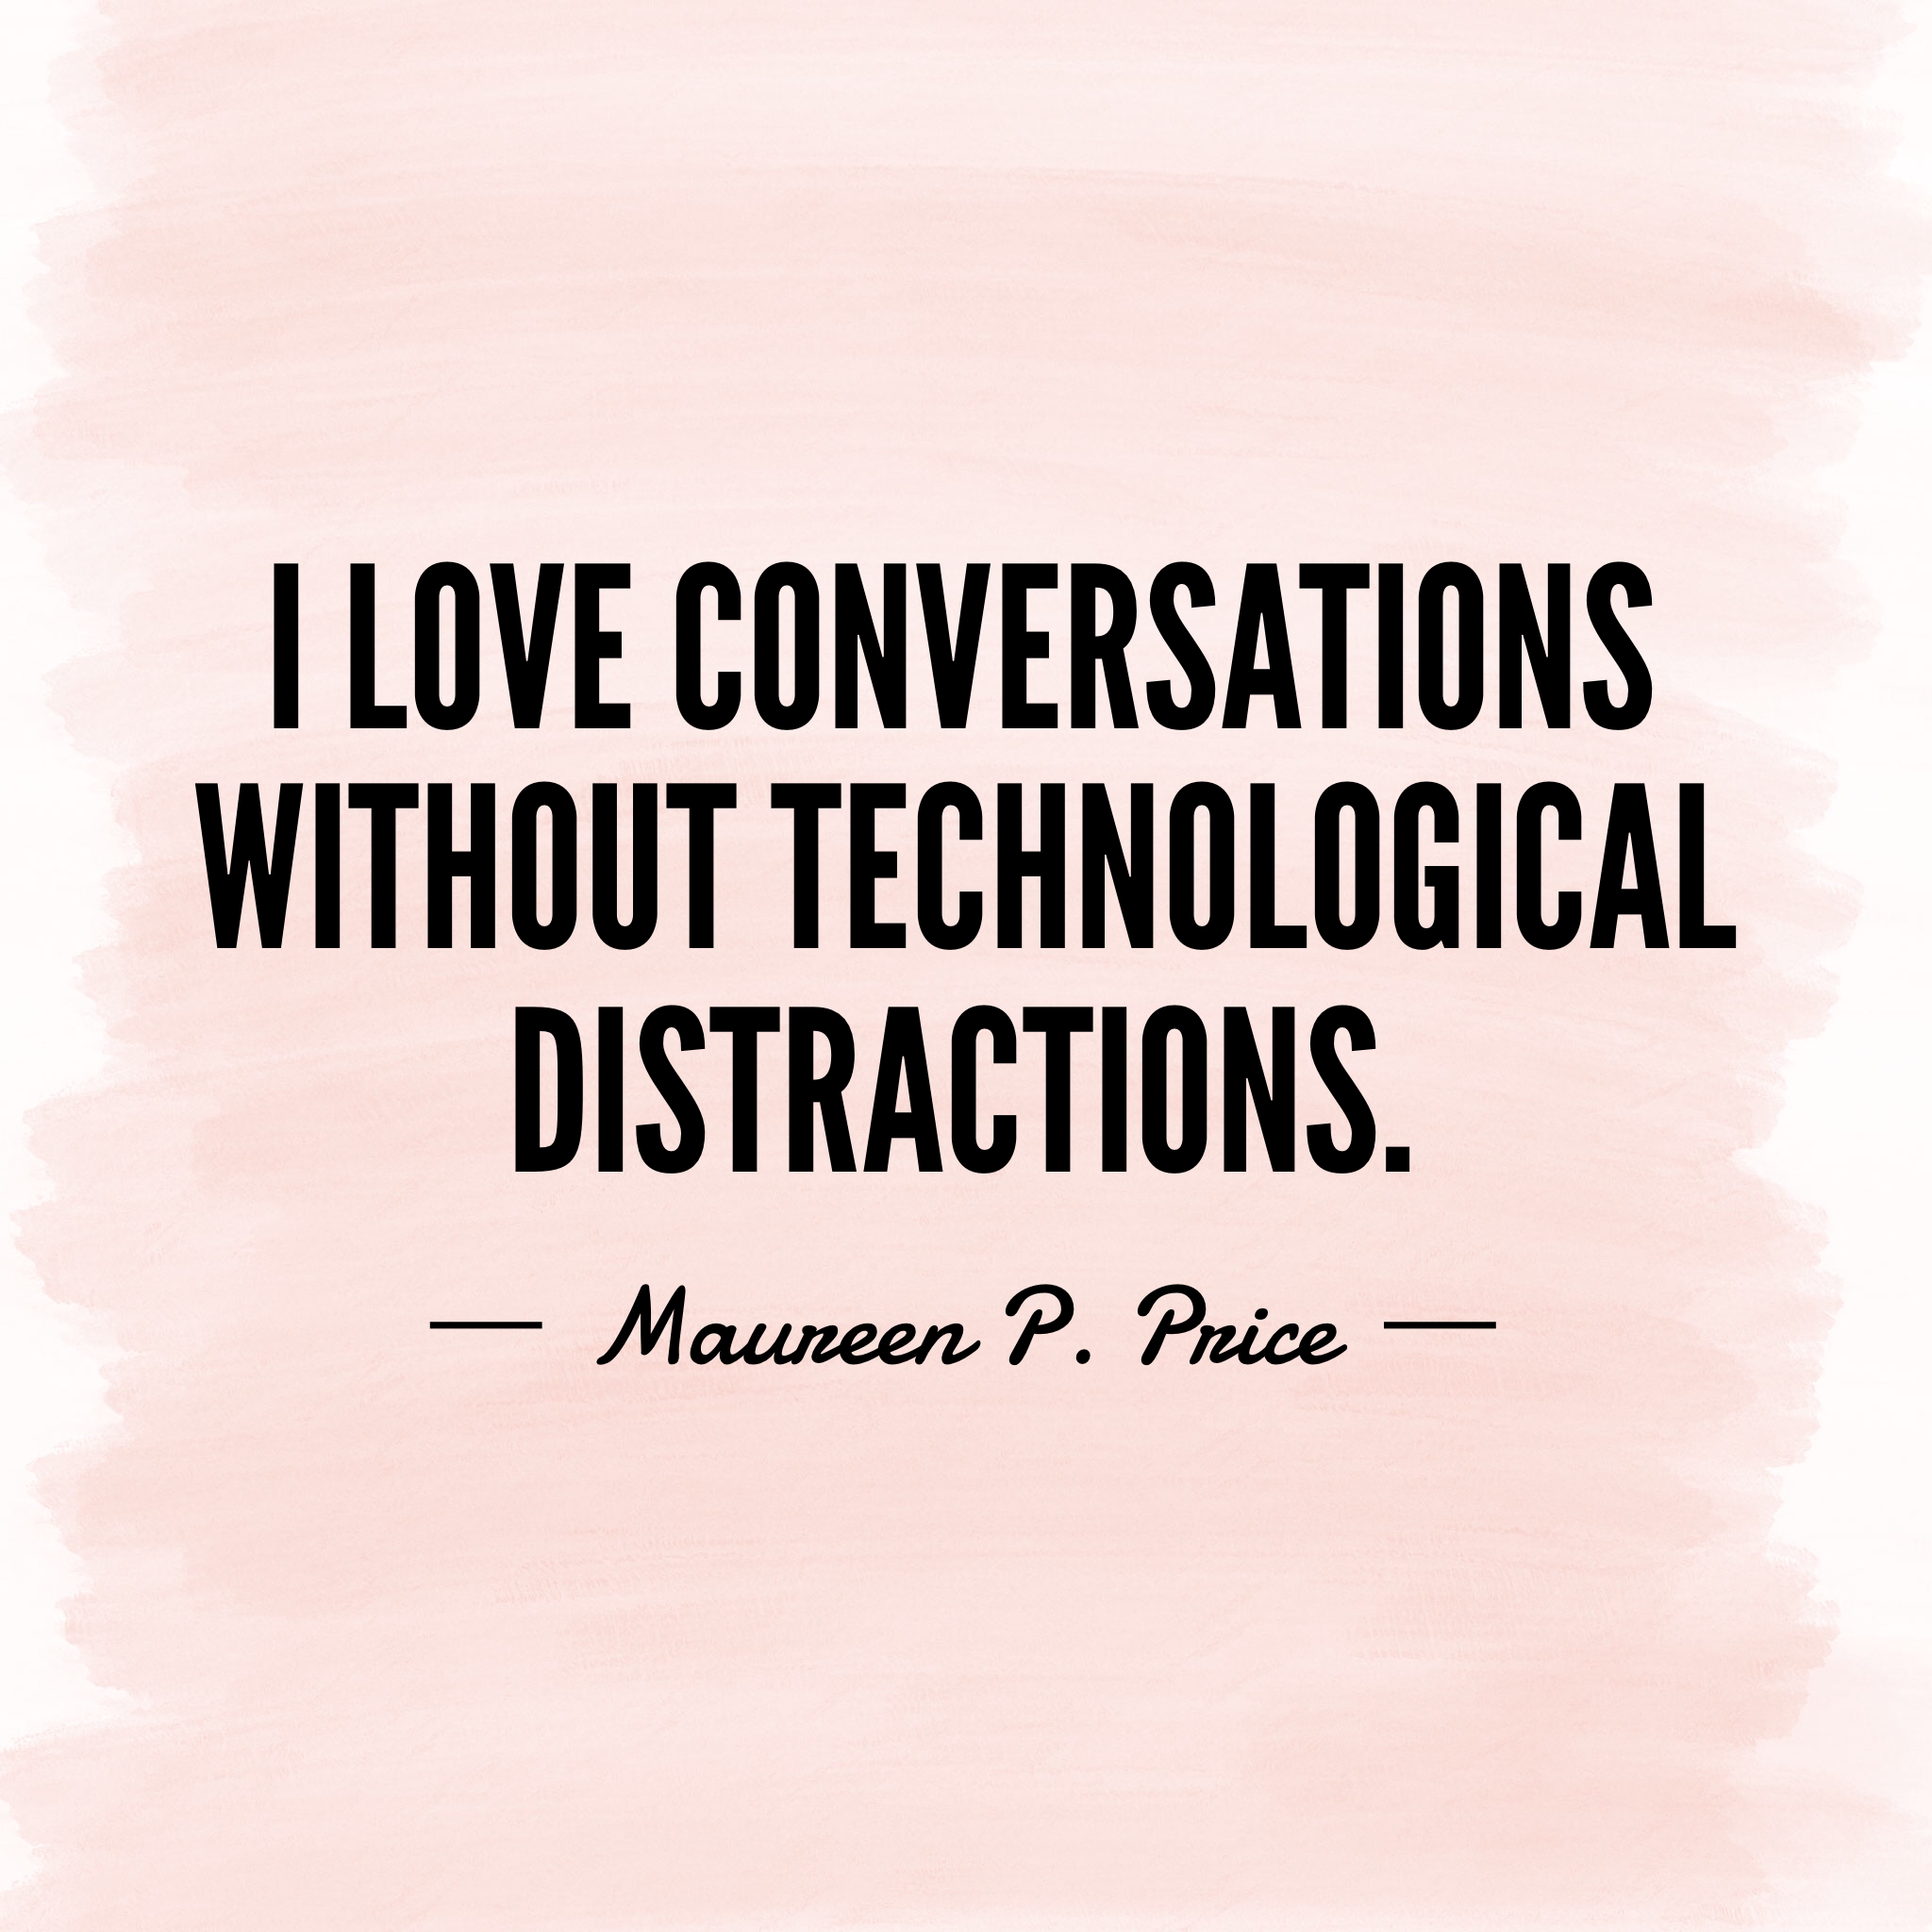 I love conversations without technological distractions